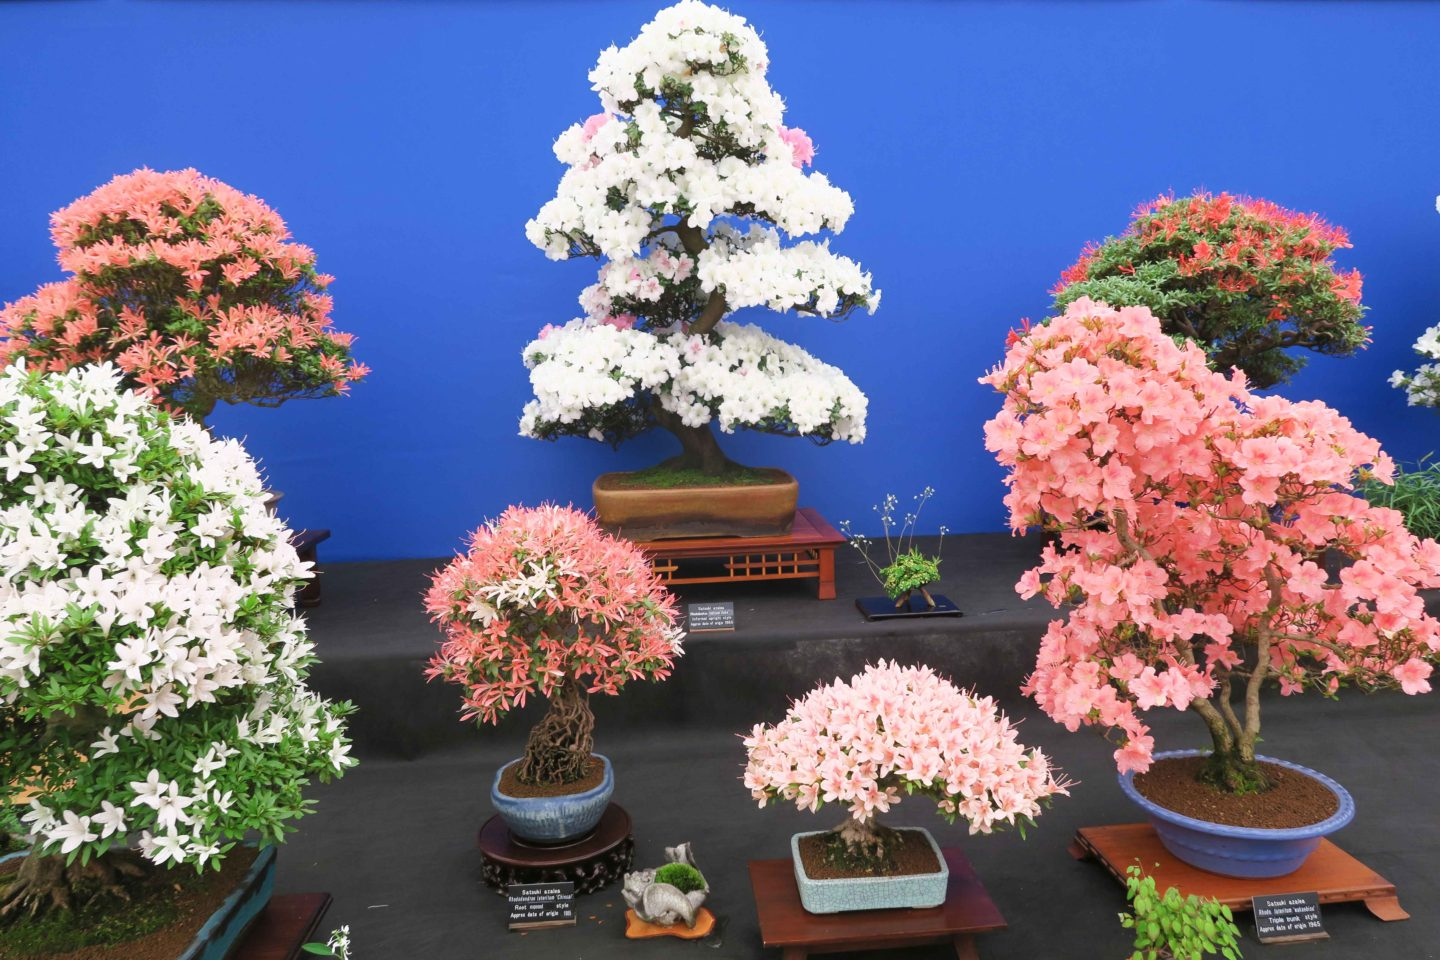 bonsai trees in the flower show tent